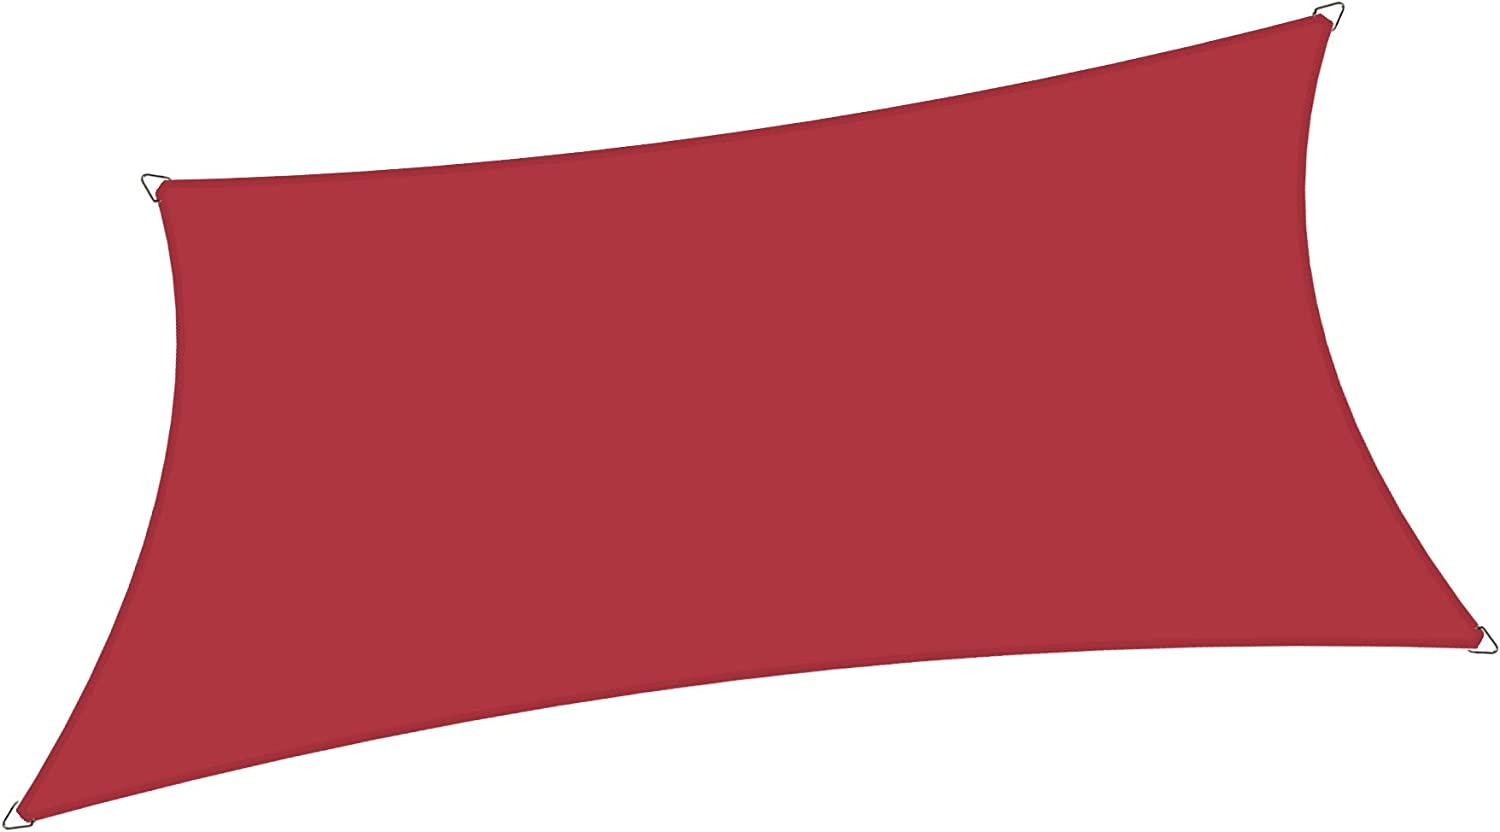 Alion Home 6' x 10' Rectangle Waterproof Polyester Woven Sun Shade Sail (1, Burgundy Red)